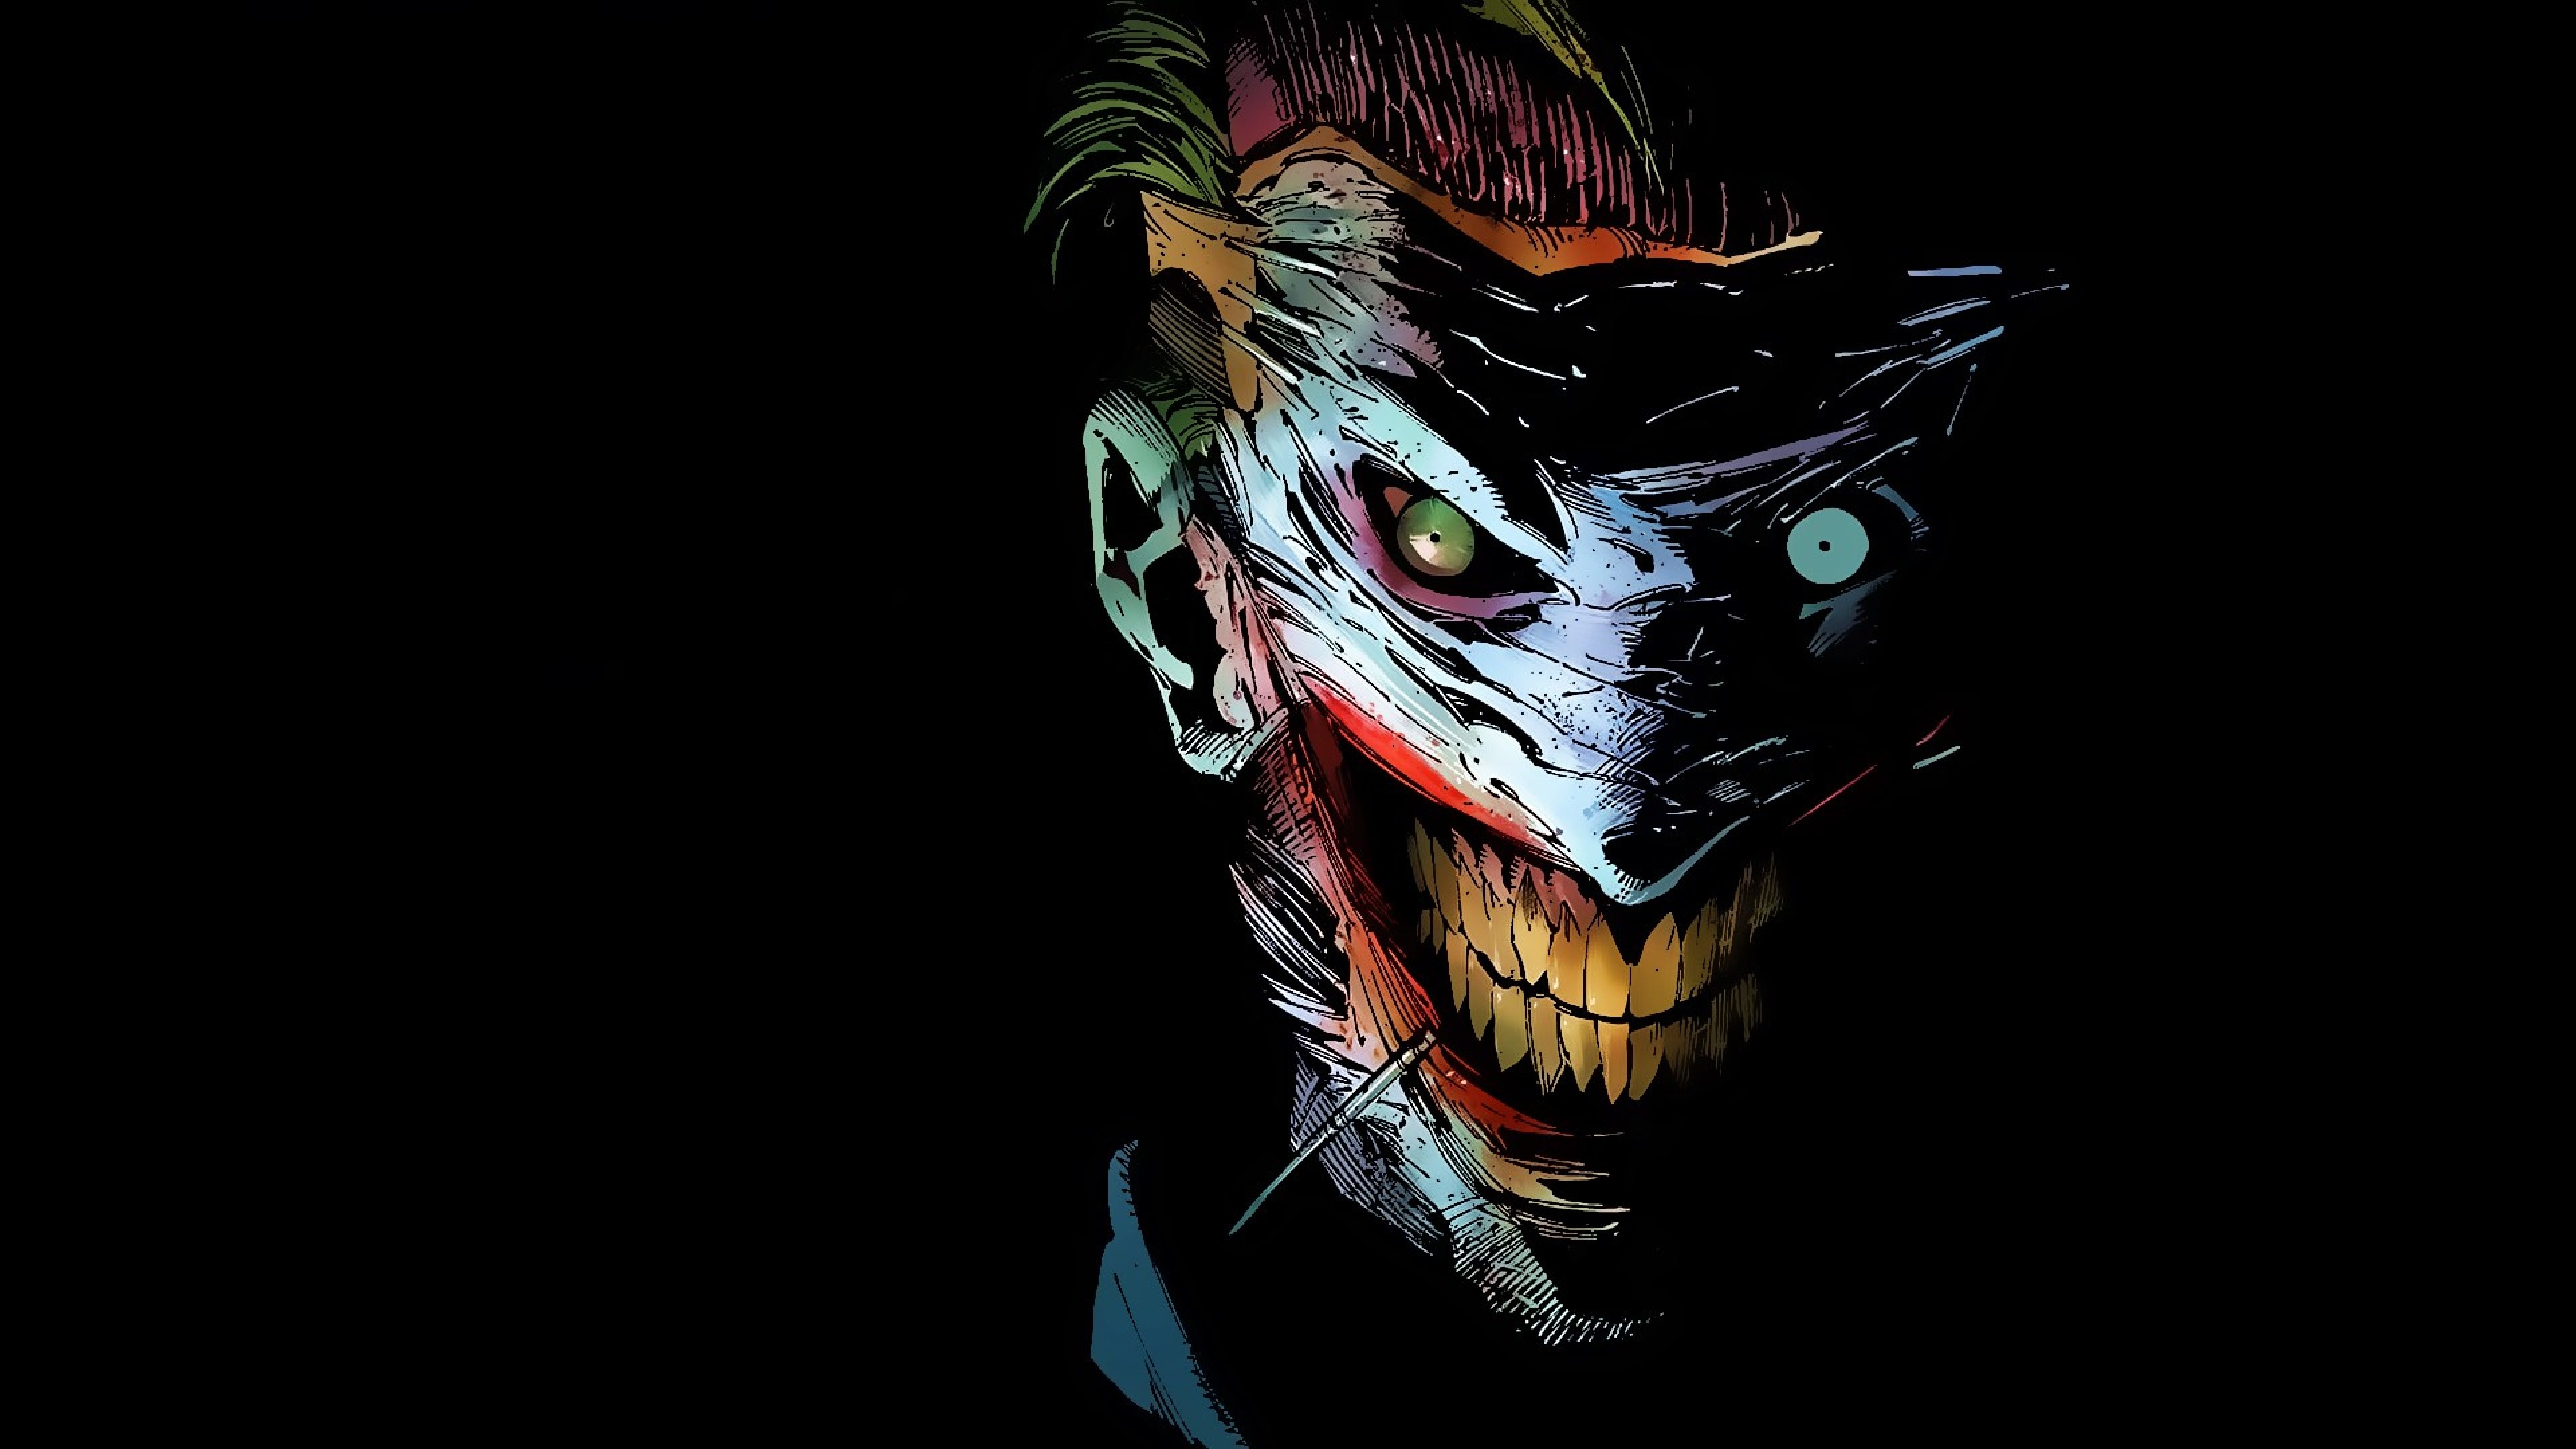 3840x2160 Preview wallpaper joker, dc comics, art